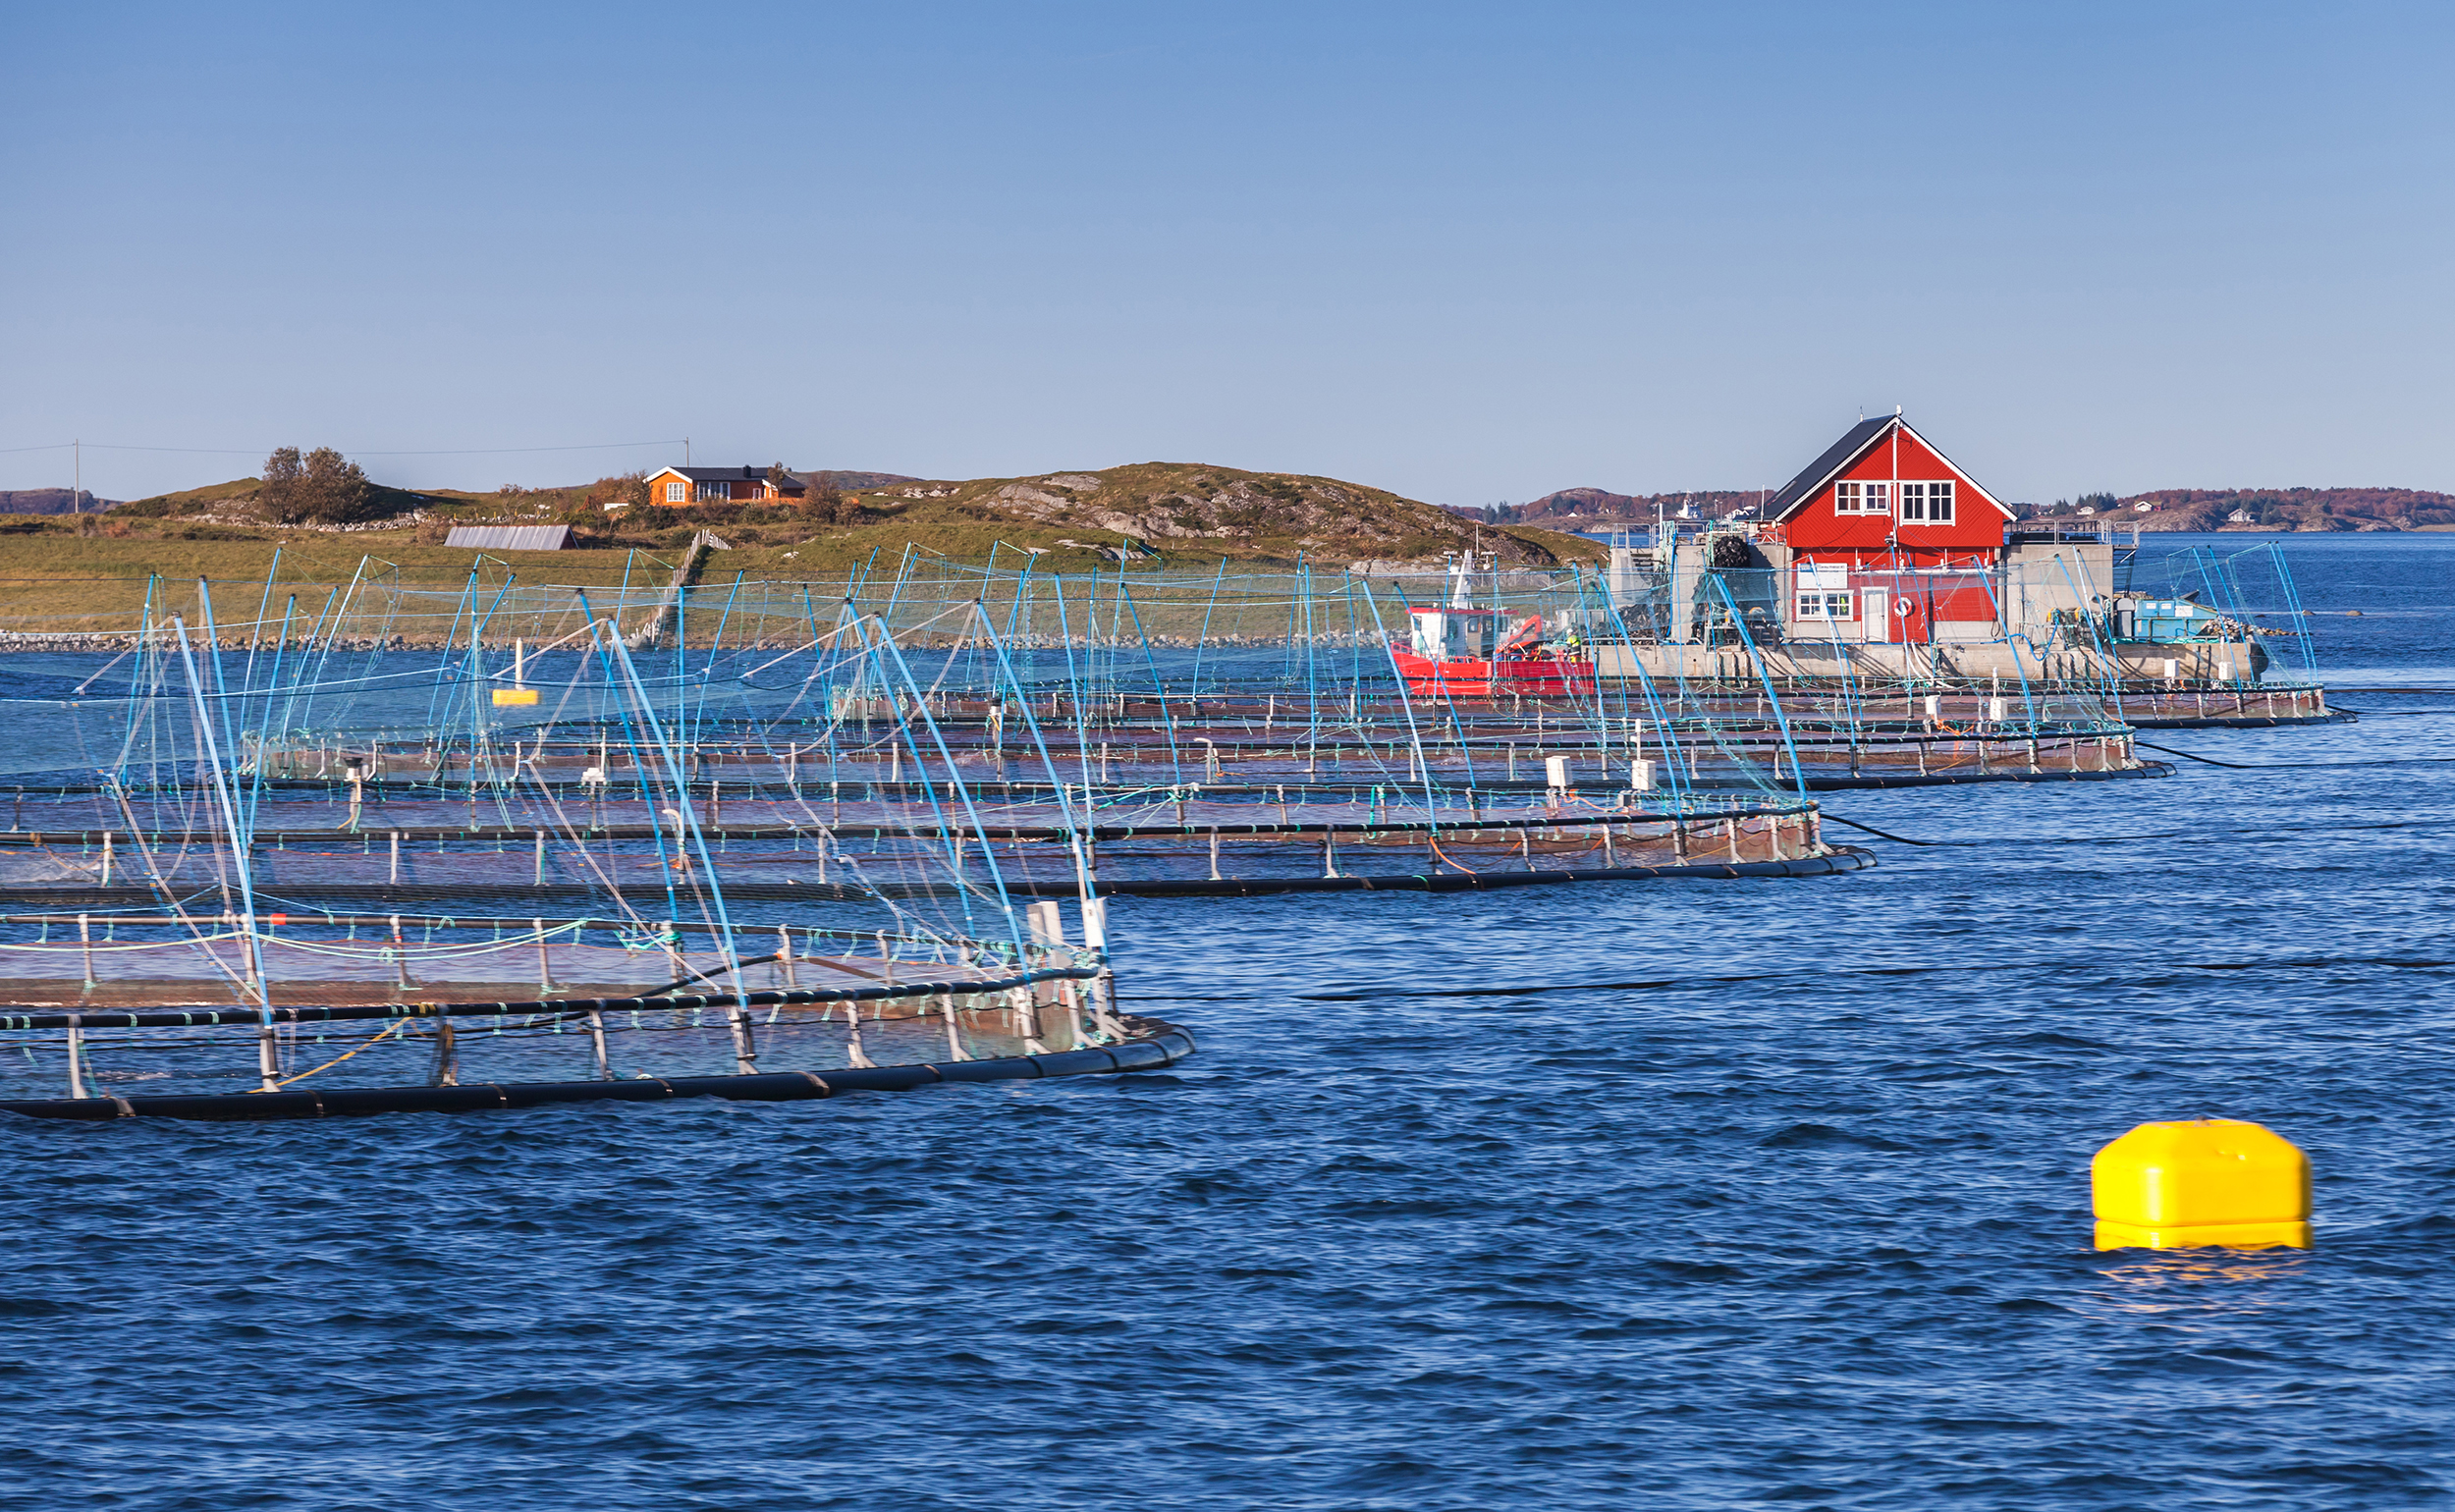 Norwegian-fish-farm-623268282_4500x2772_low.jpg